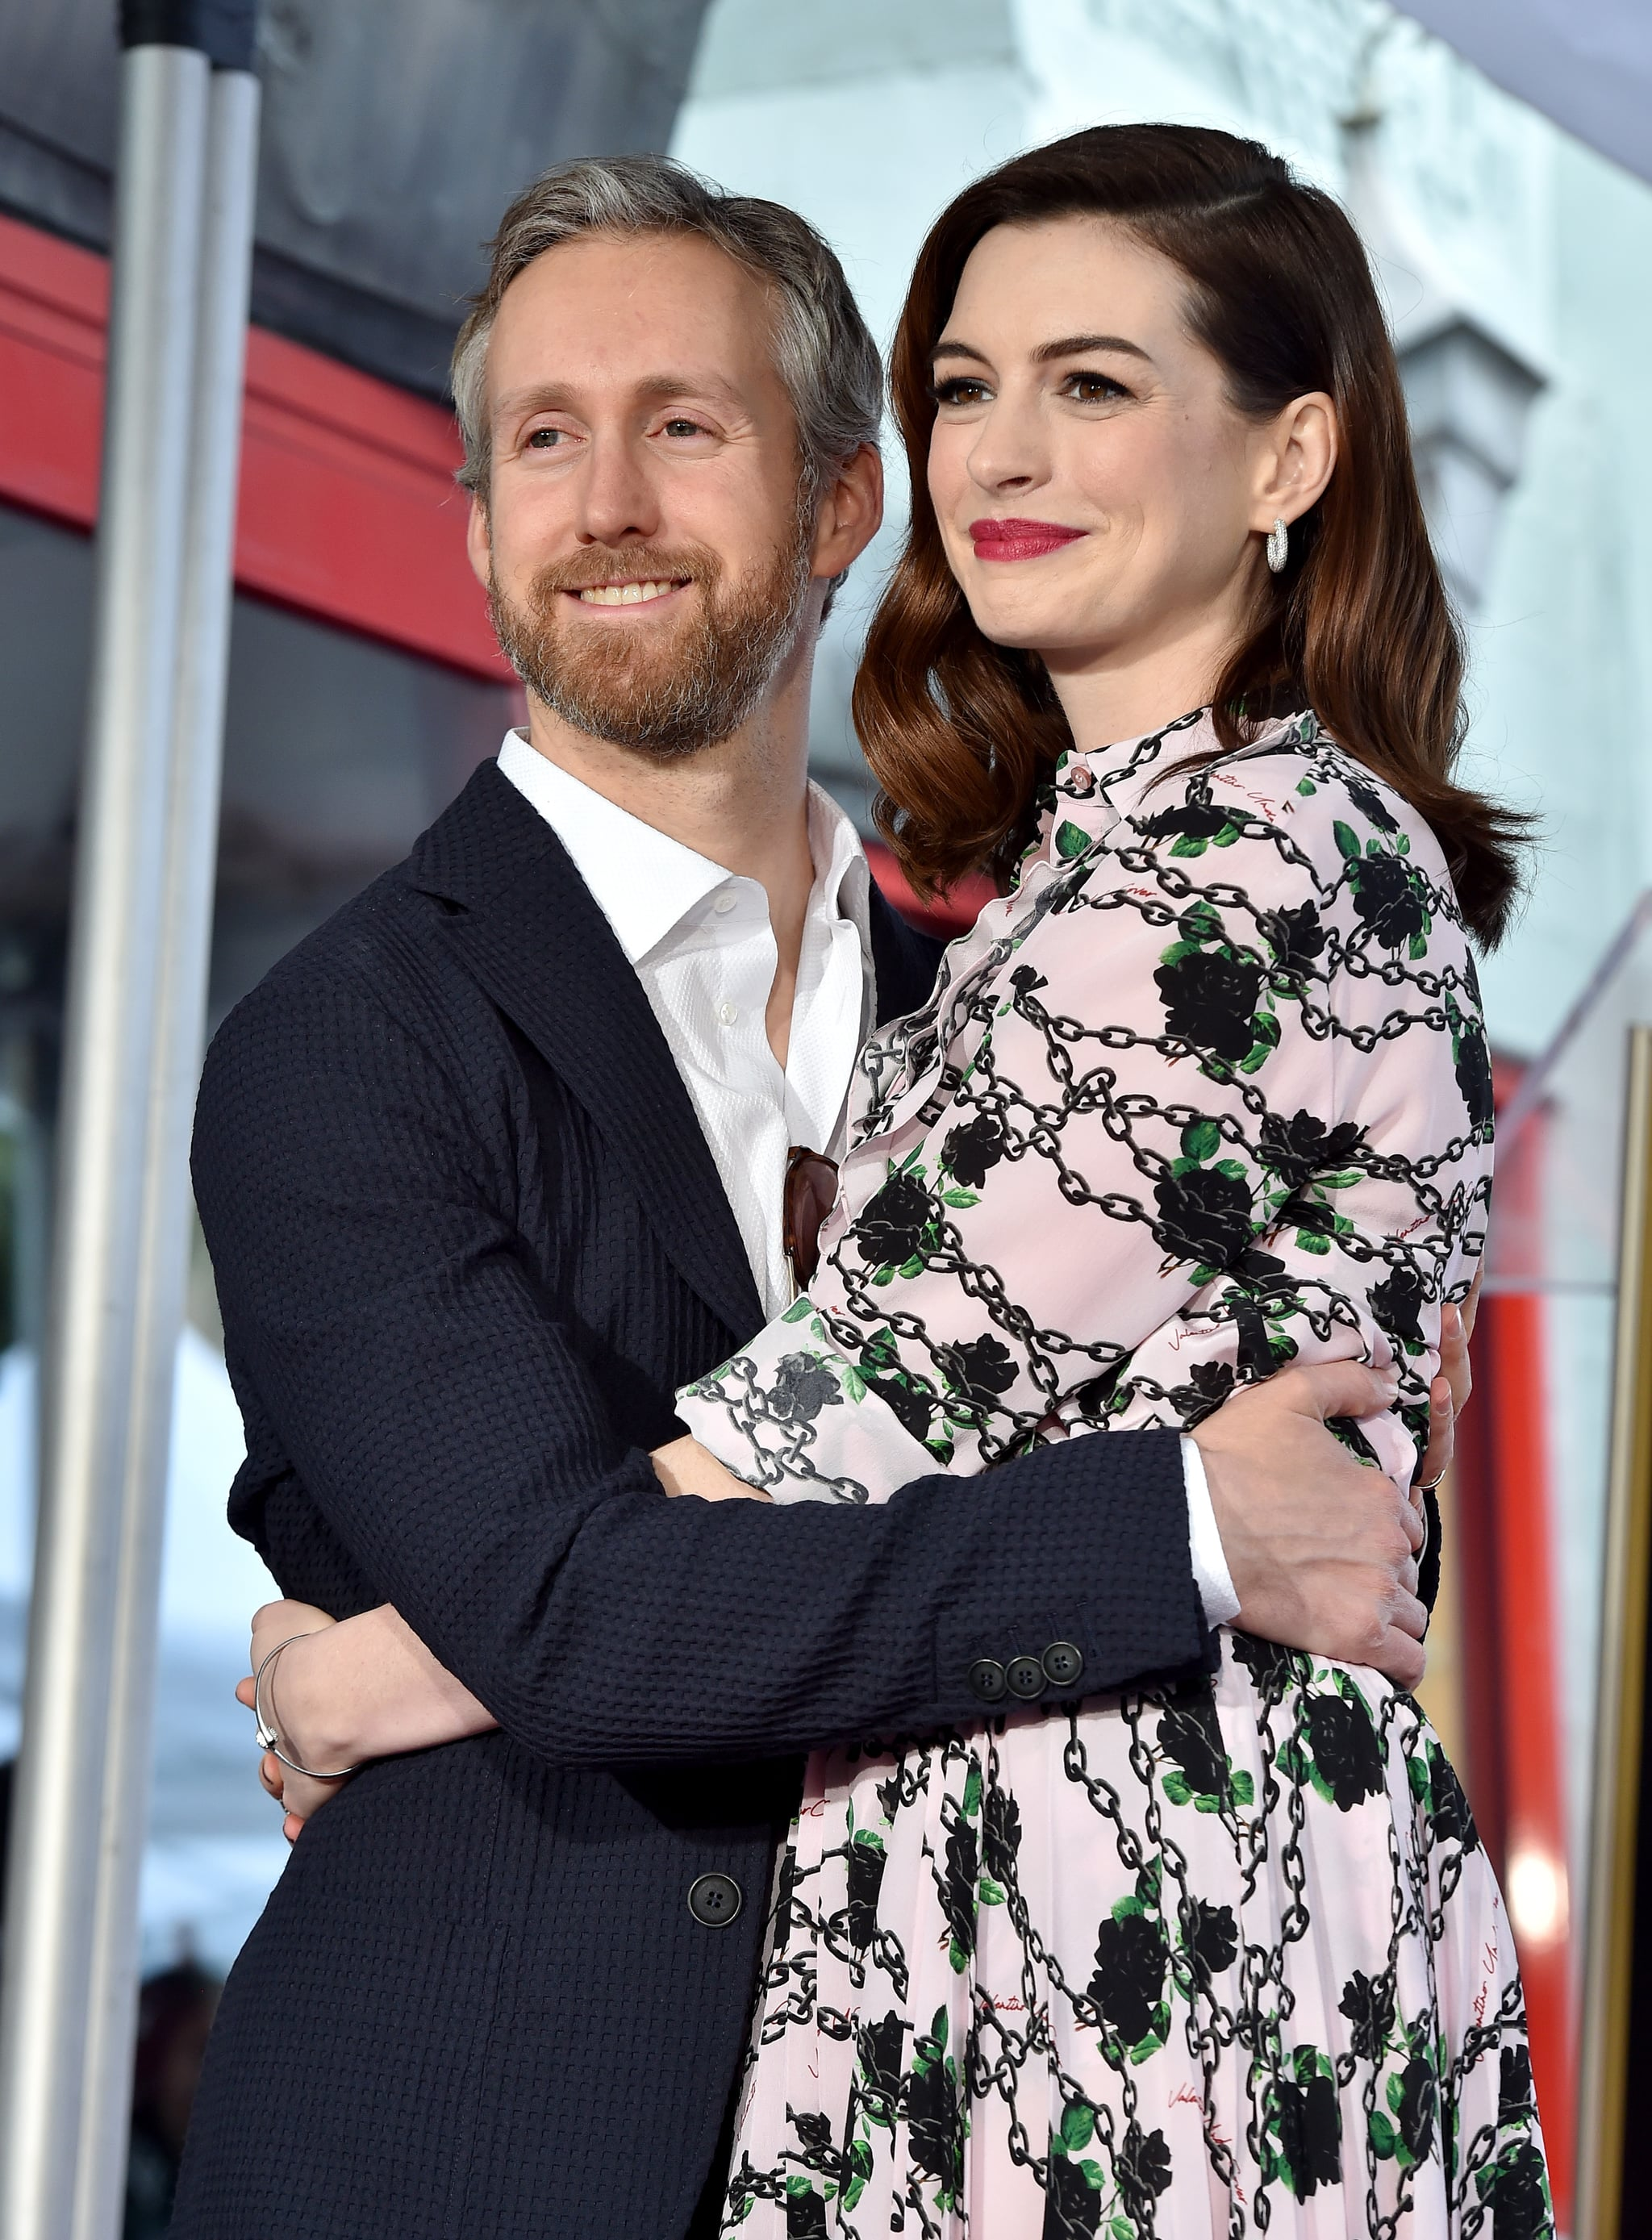 HOLLYWOOD, CALIFORNIA - MAY 09: Anne Hathaway and Adam Shulman attend the ceremony honouring Anne Hathaway with star on the Hollywood Walk of Fame on May 09, 2019 in Hollywood, California. (Photo by Axelle/Bauer-Griffin/FilmMagic)